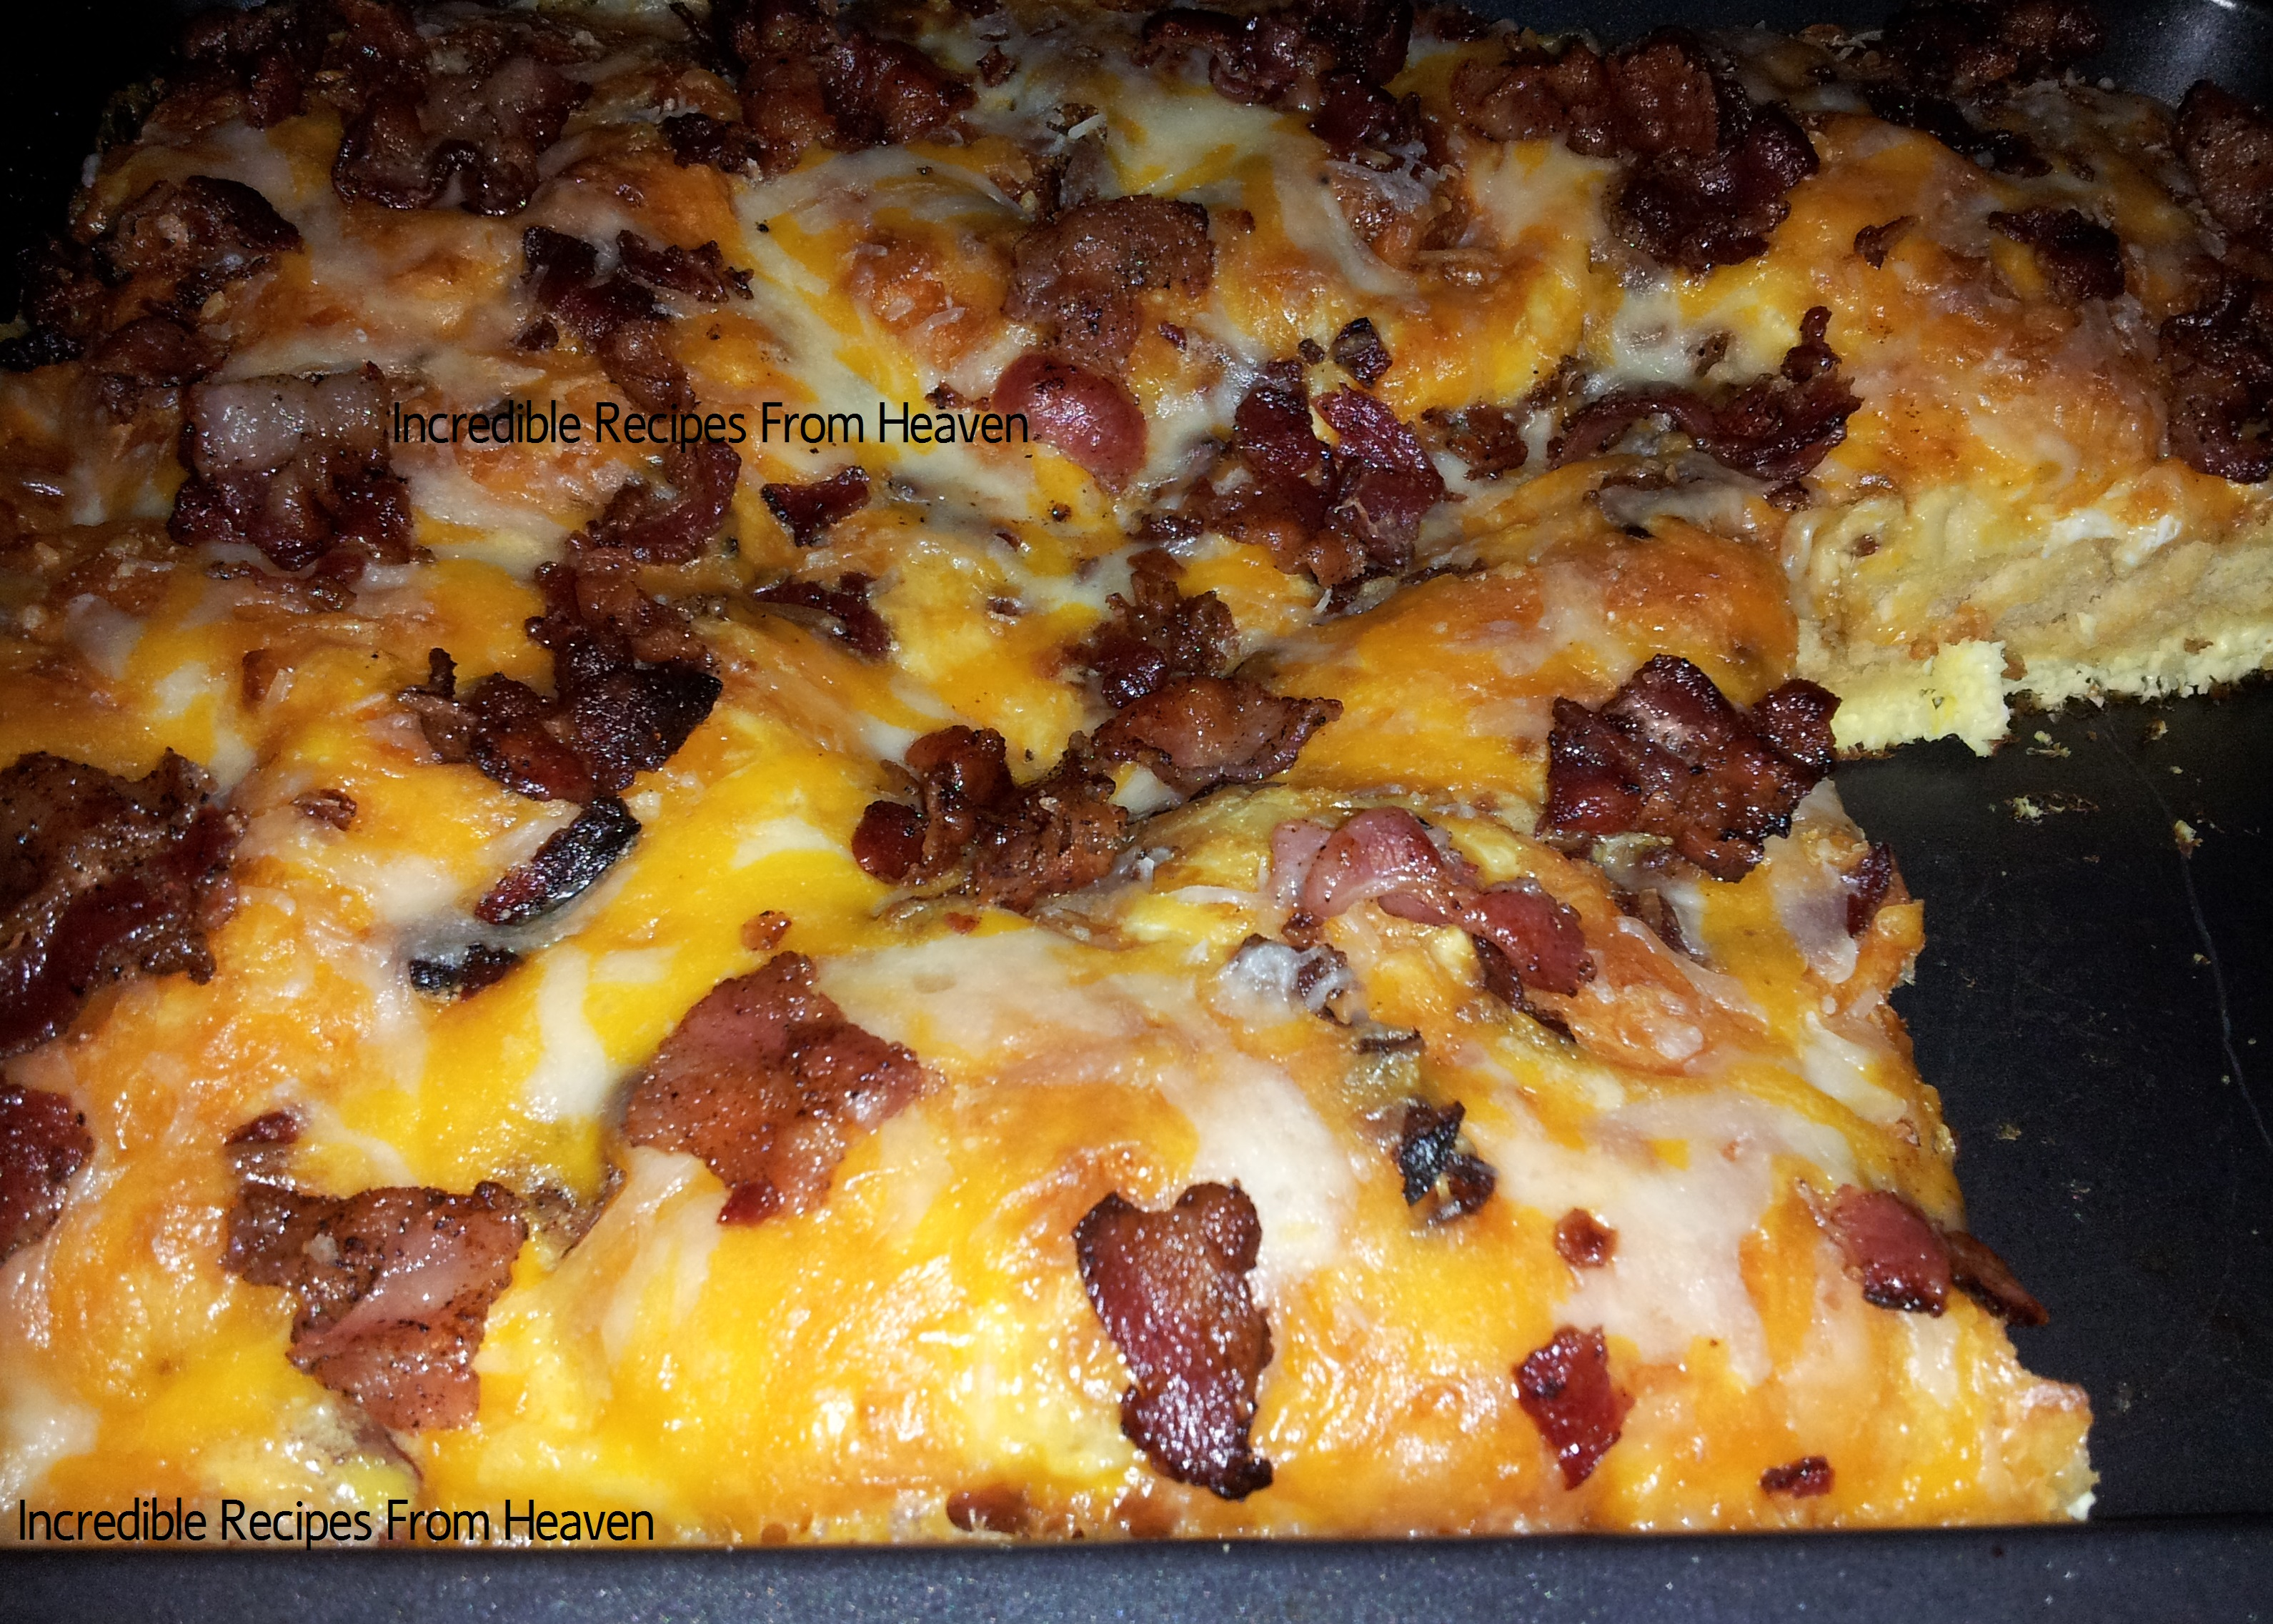 Bacon Egg Amp Cheese Biscuit Bake